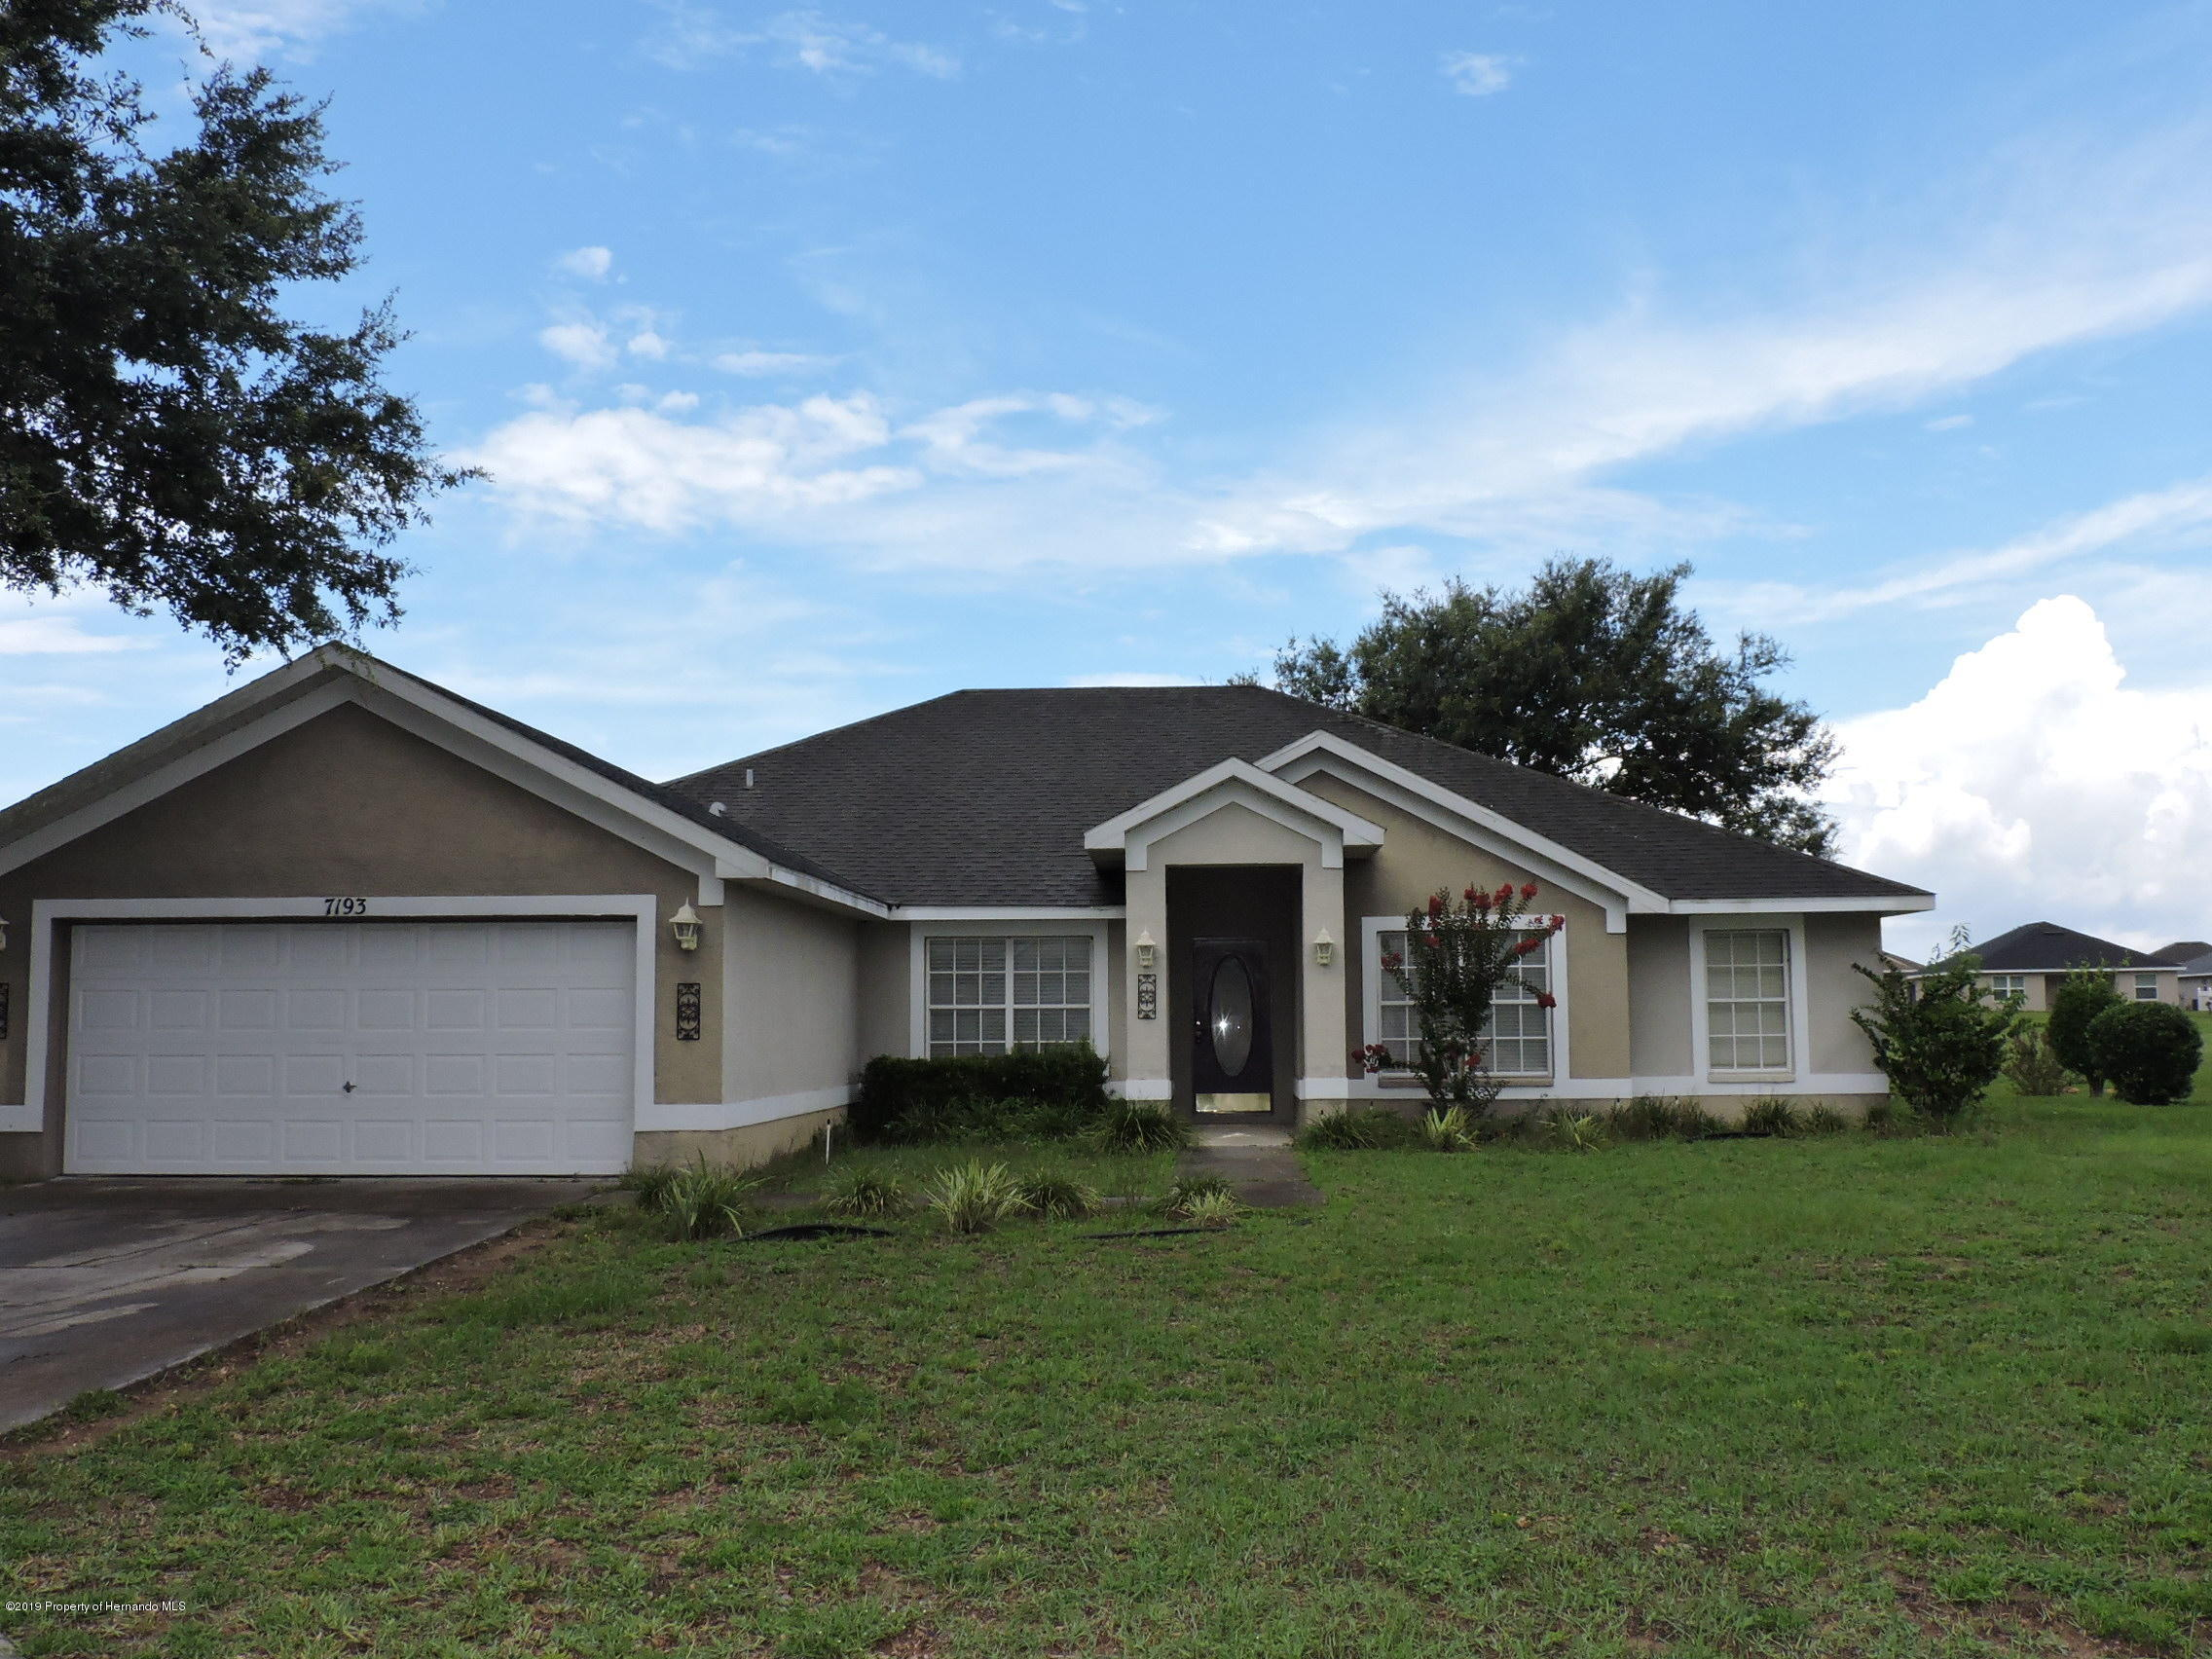 Details for 7193 Periwinkle Court, Brooksville, FL 34602